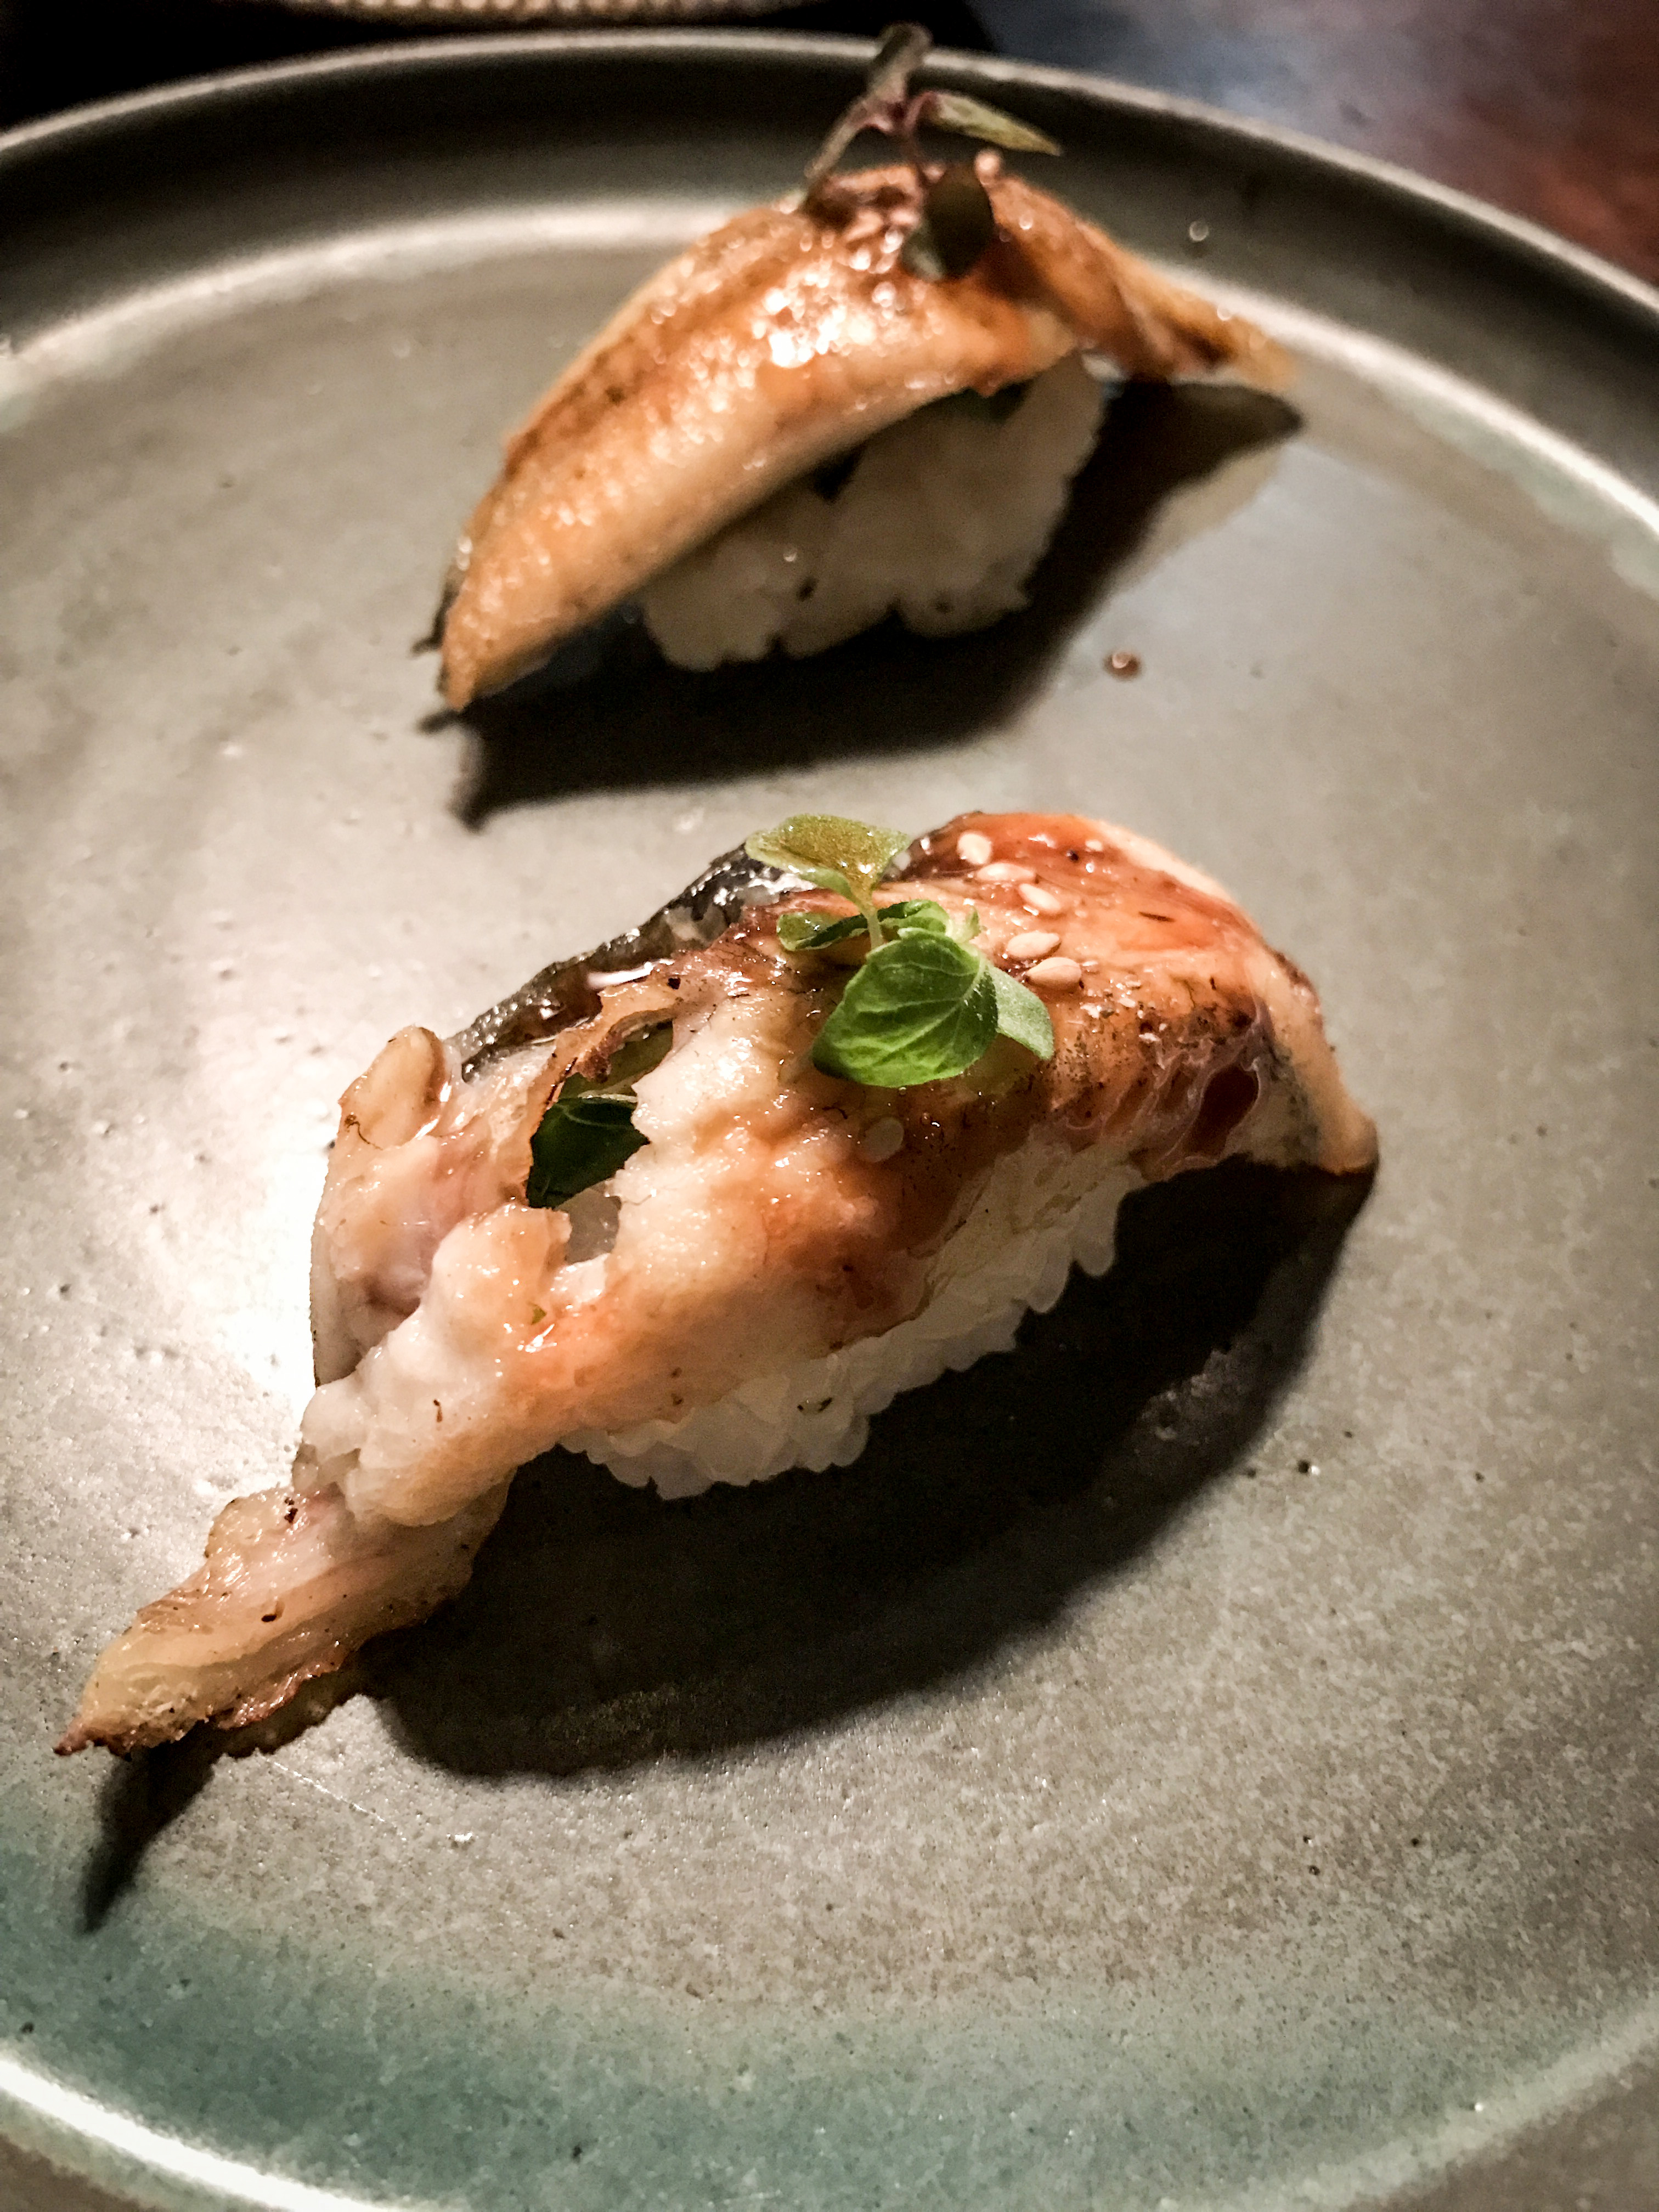 Back to delicious fish with warm grilled eel topped with thai basil and sansho (a Japanese pepper)